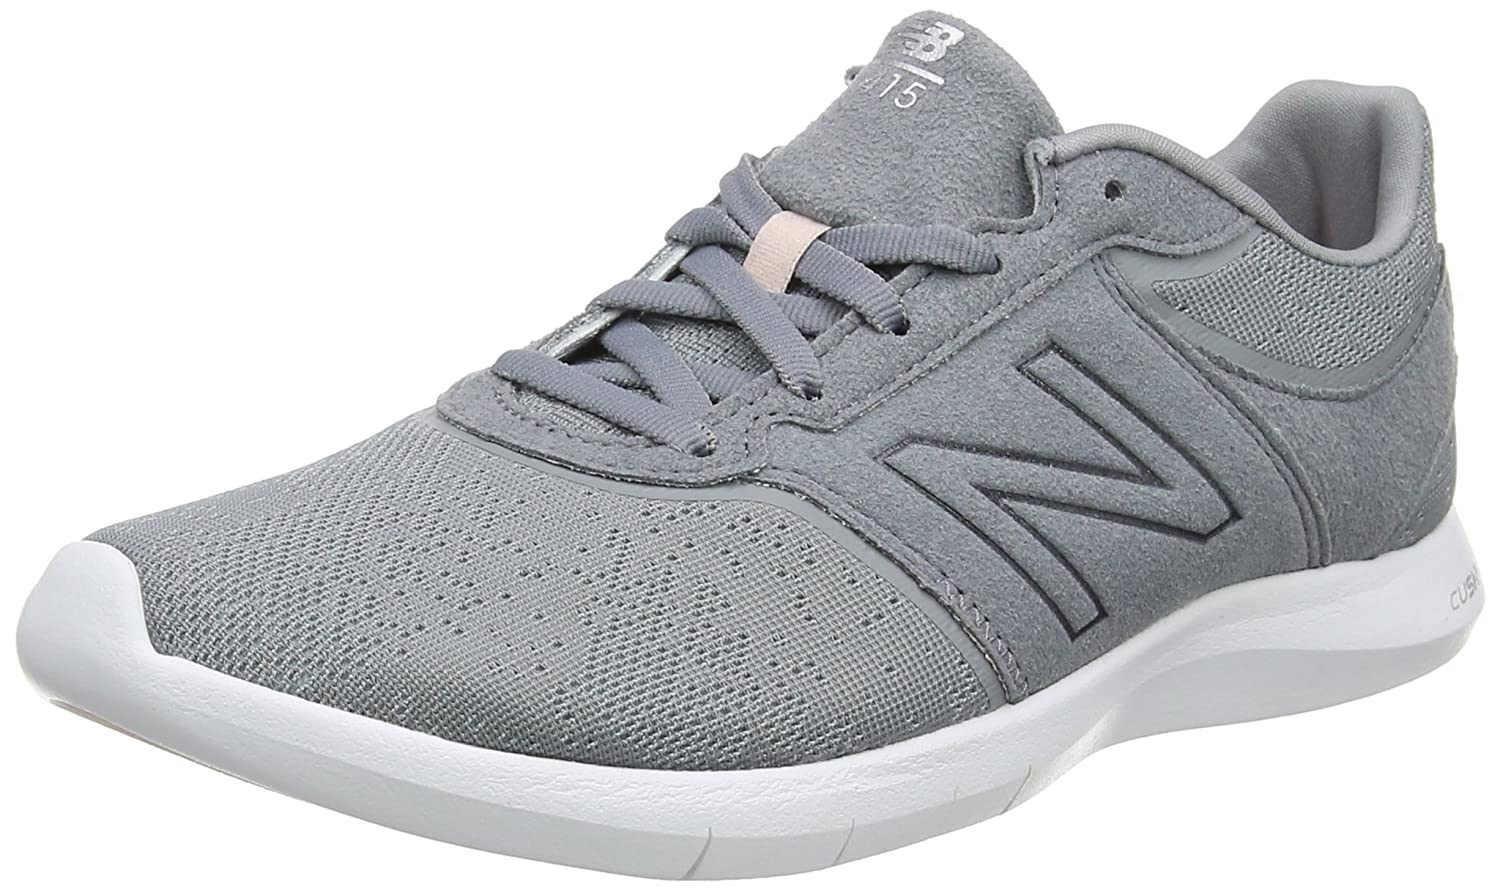 5b0fe0af6426a New Balance Women s 415 Trainers  Amazon.co.uk  Shoes   Bags